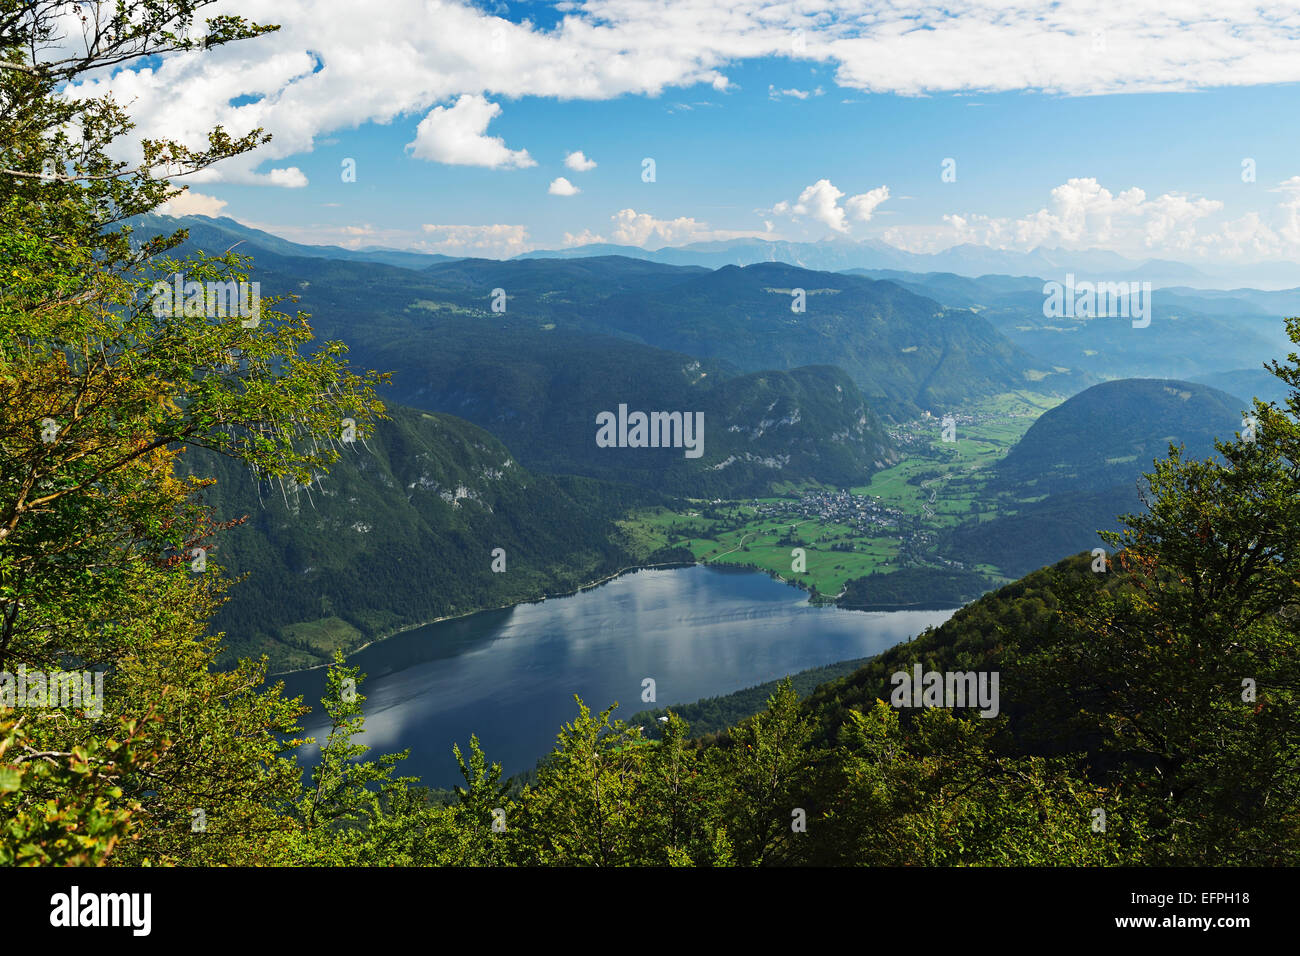 Lake Bohinj, Bohimj valley, Julian Alps, Triglav National Park, Slovenia, Europe - Stock Image